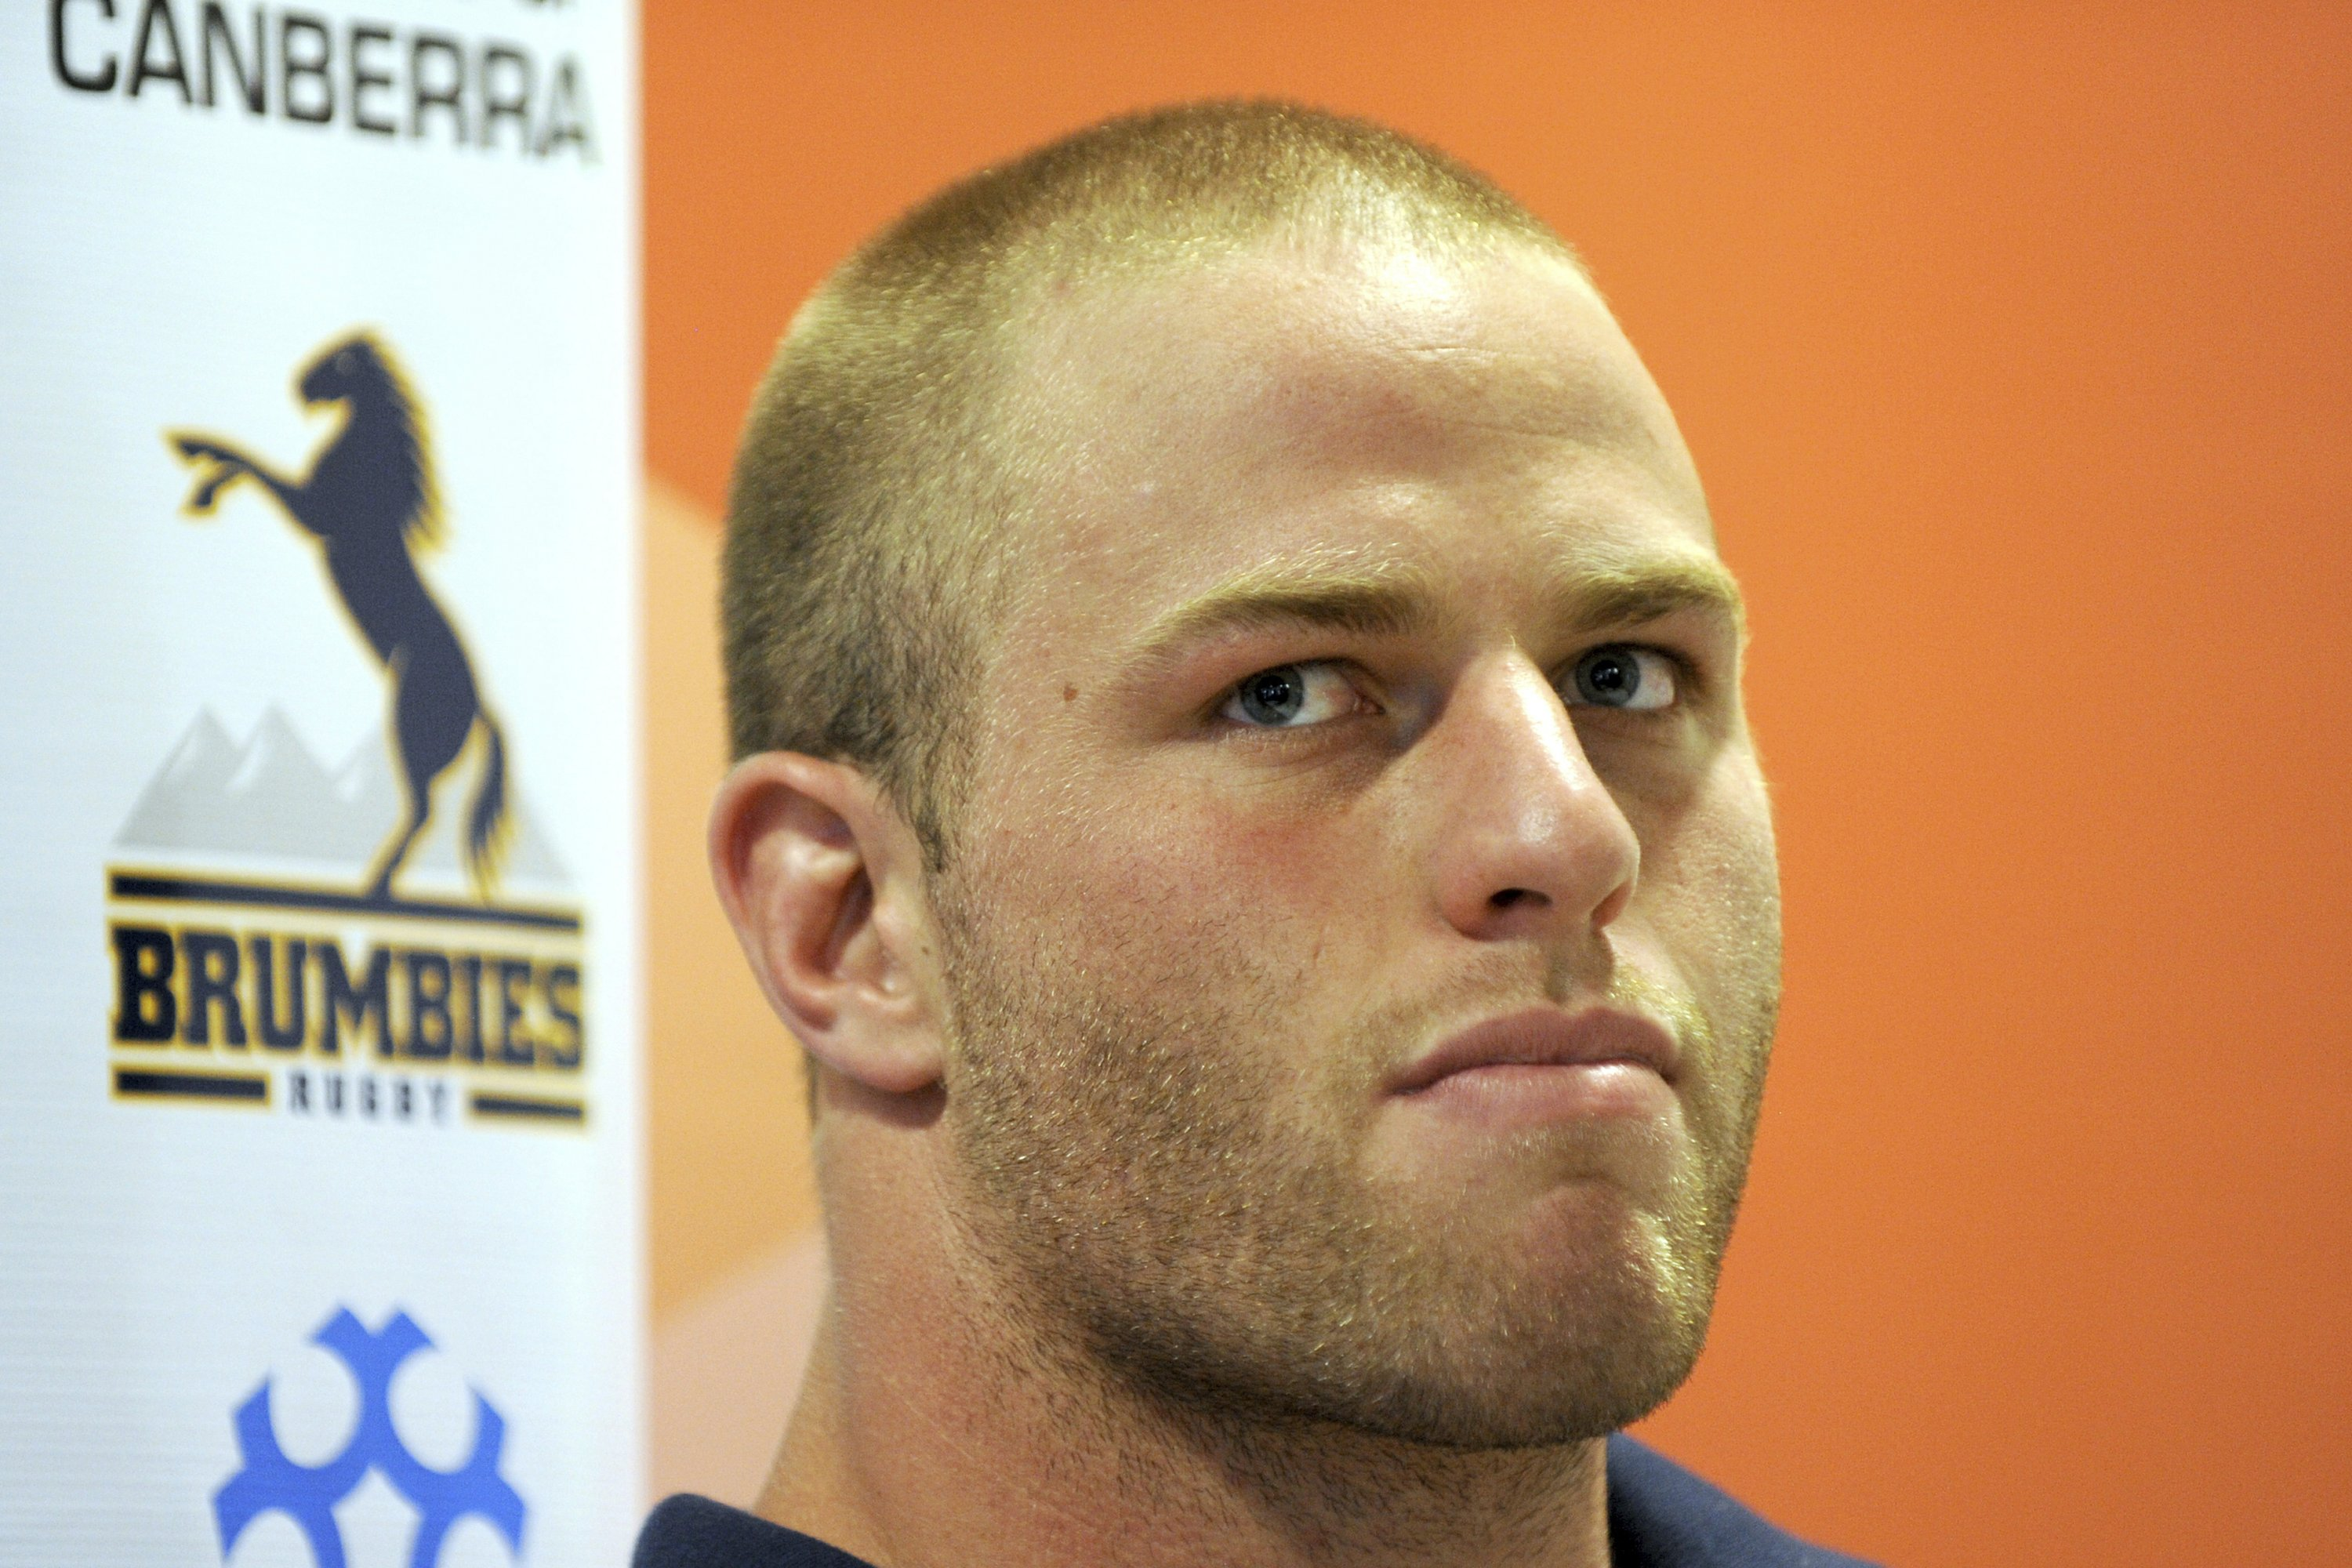 After emotional struggle, rugby prop Palmer comes out as gay